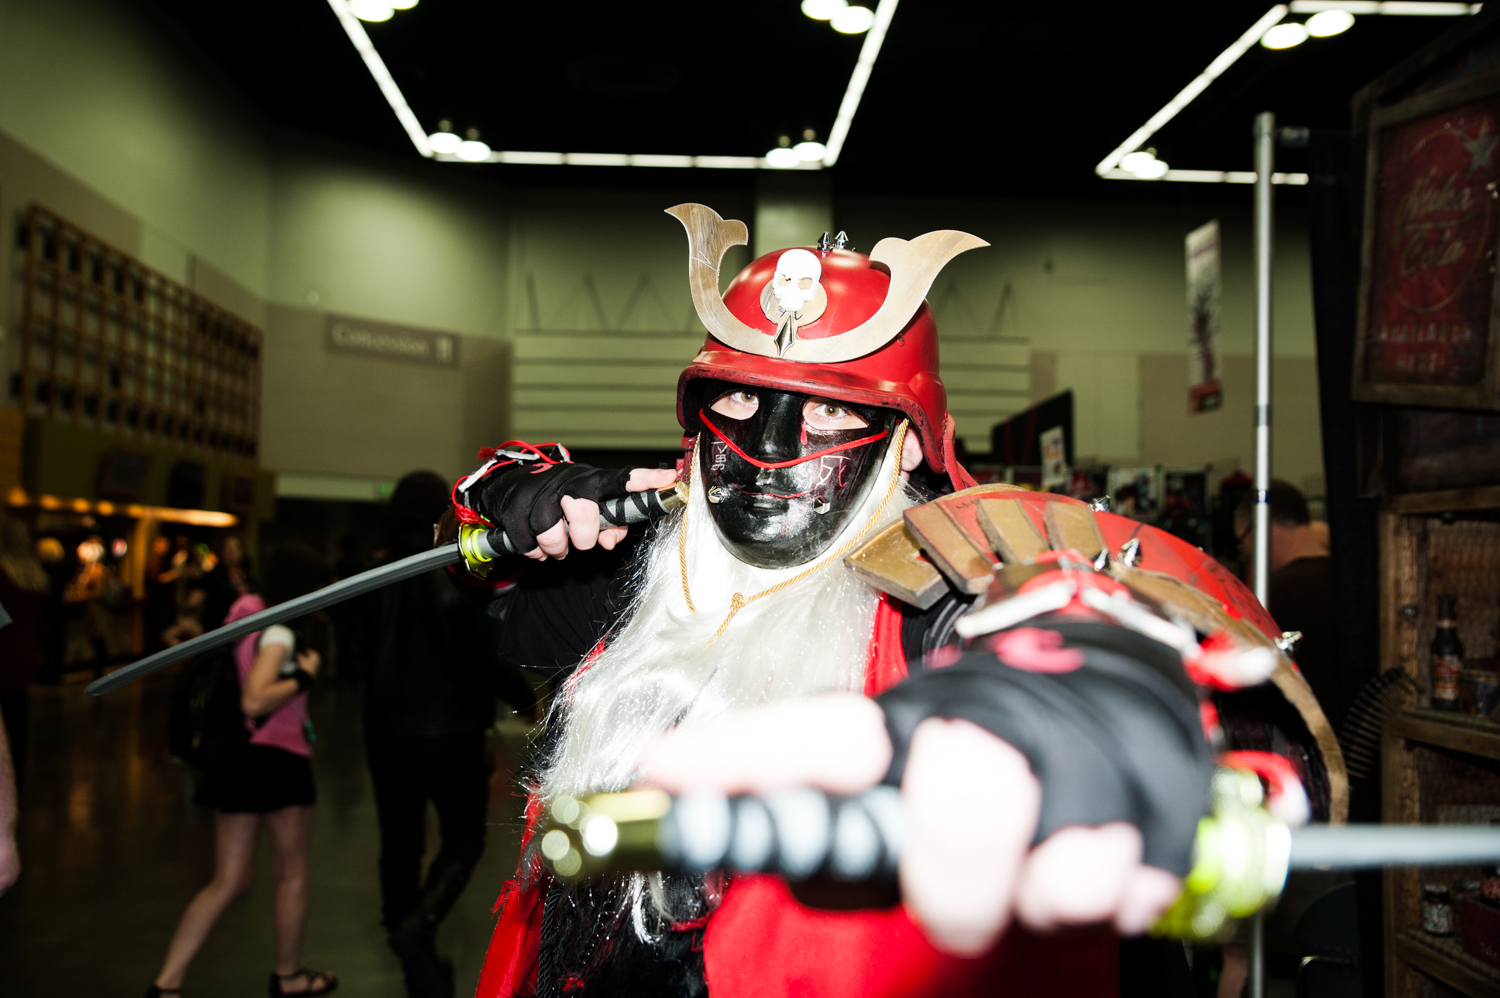 Rose City Comic Con is the premier comic book and pop culture convention in Portland, Oregon. Hundreds flood the city dressed as their favorite characters, many of whom have put days and incredible effort into their makeup and costumes. Don't believe us? Check out these pictures – incredible, right? (Image: Elizabeth Crook / Seattle Refined)